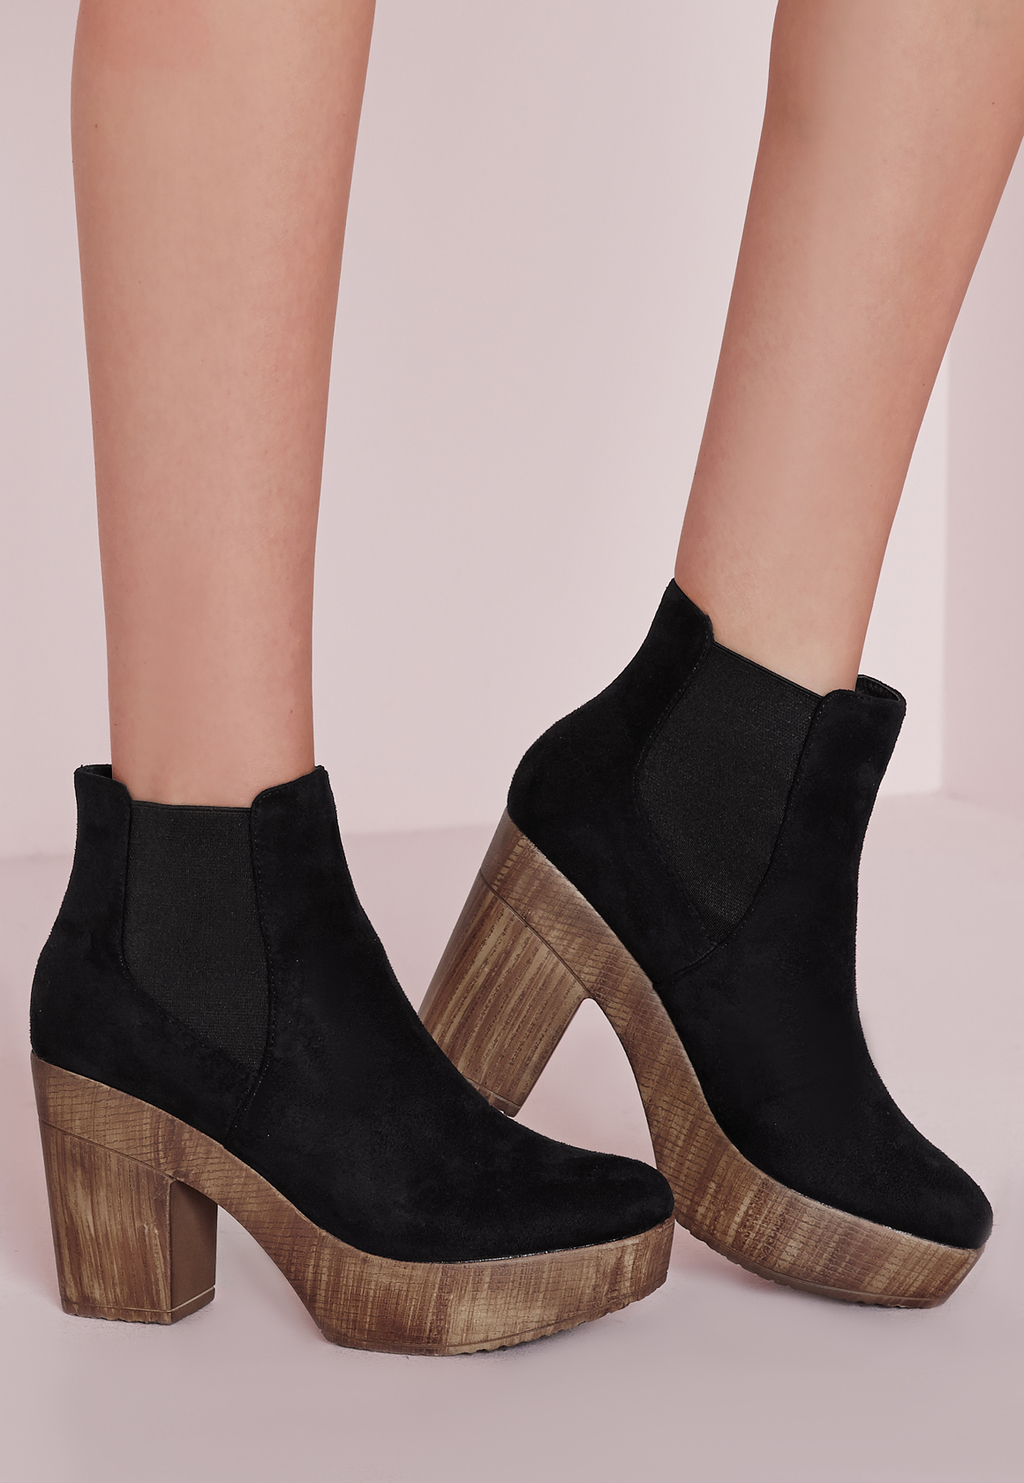 70's Clog Ankle Boots Black, Black - secondary colour: camel; predominant colour: black; occasions: casual, creative work; material: suede; heel height: high; heel: block; toe: open toe/peeptoe; boot length: ankle boot; style: standard; finish: plain; pattern: plain; shoe detail: platform; season: s/s 2016; wardrobe: highlight